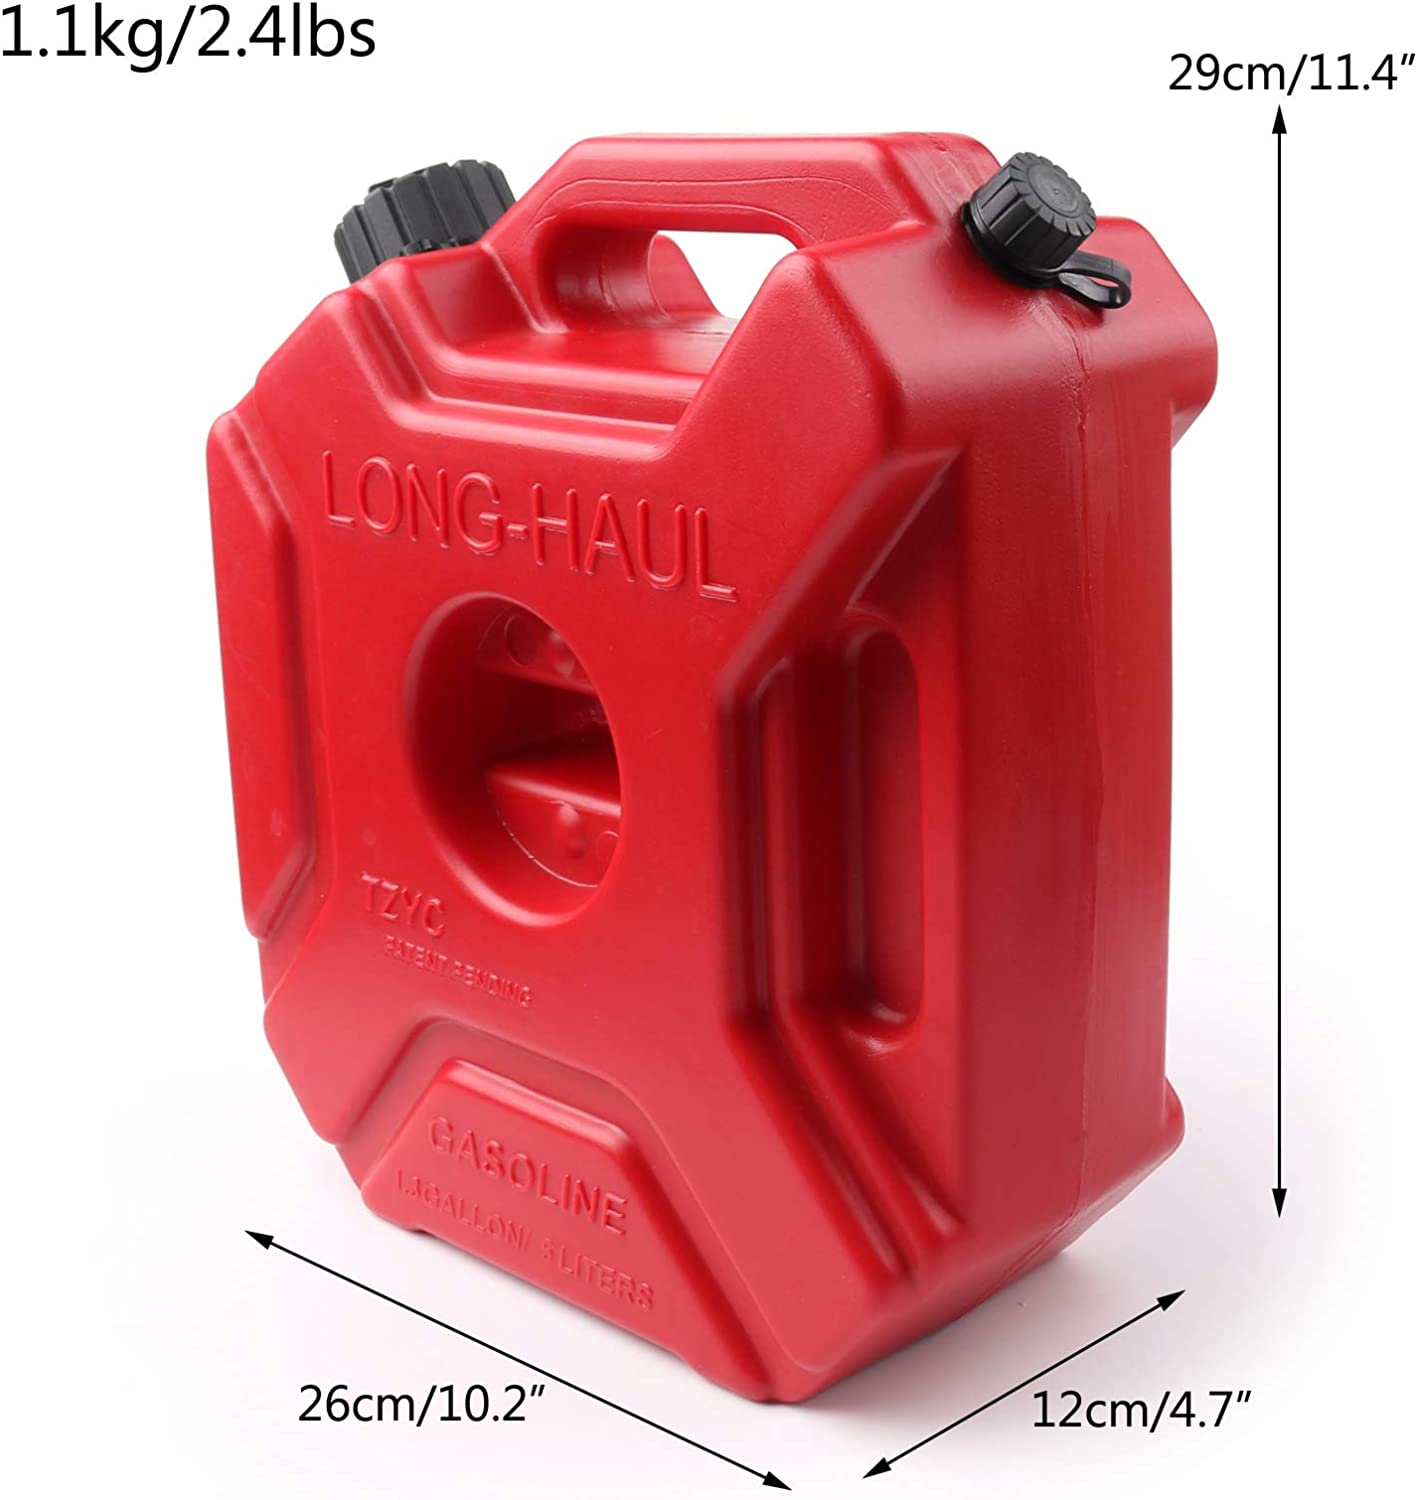 5L Plastic Red Outboard Fuel Tank Portable Motorbike Petrol Can for SUV ATV Motorcycle Scooter Offroad Vehicles Artudatech Jerry Can